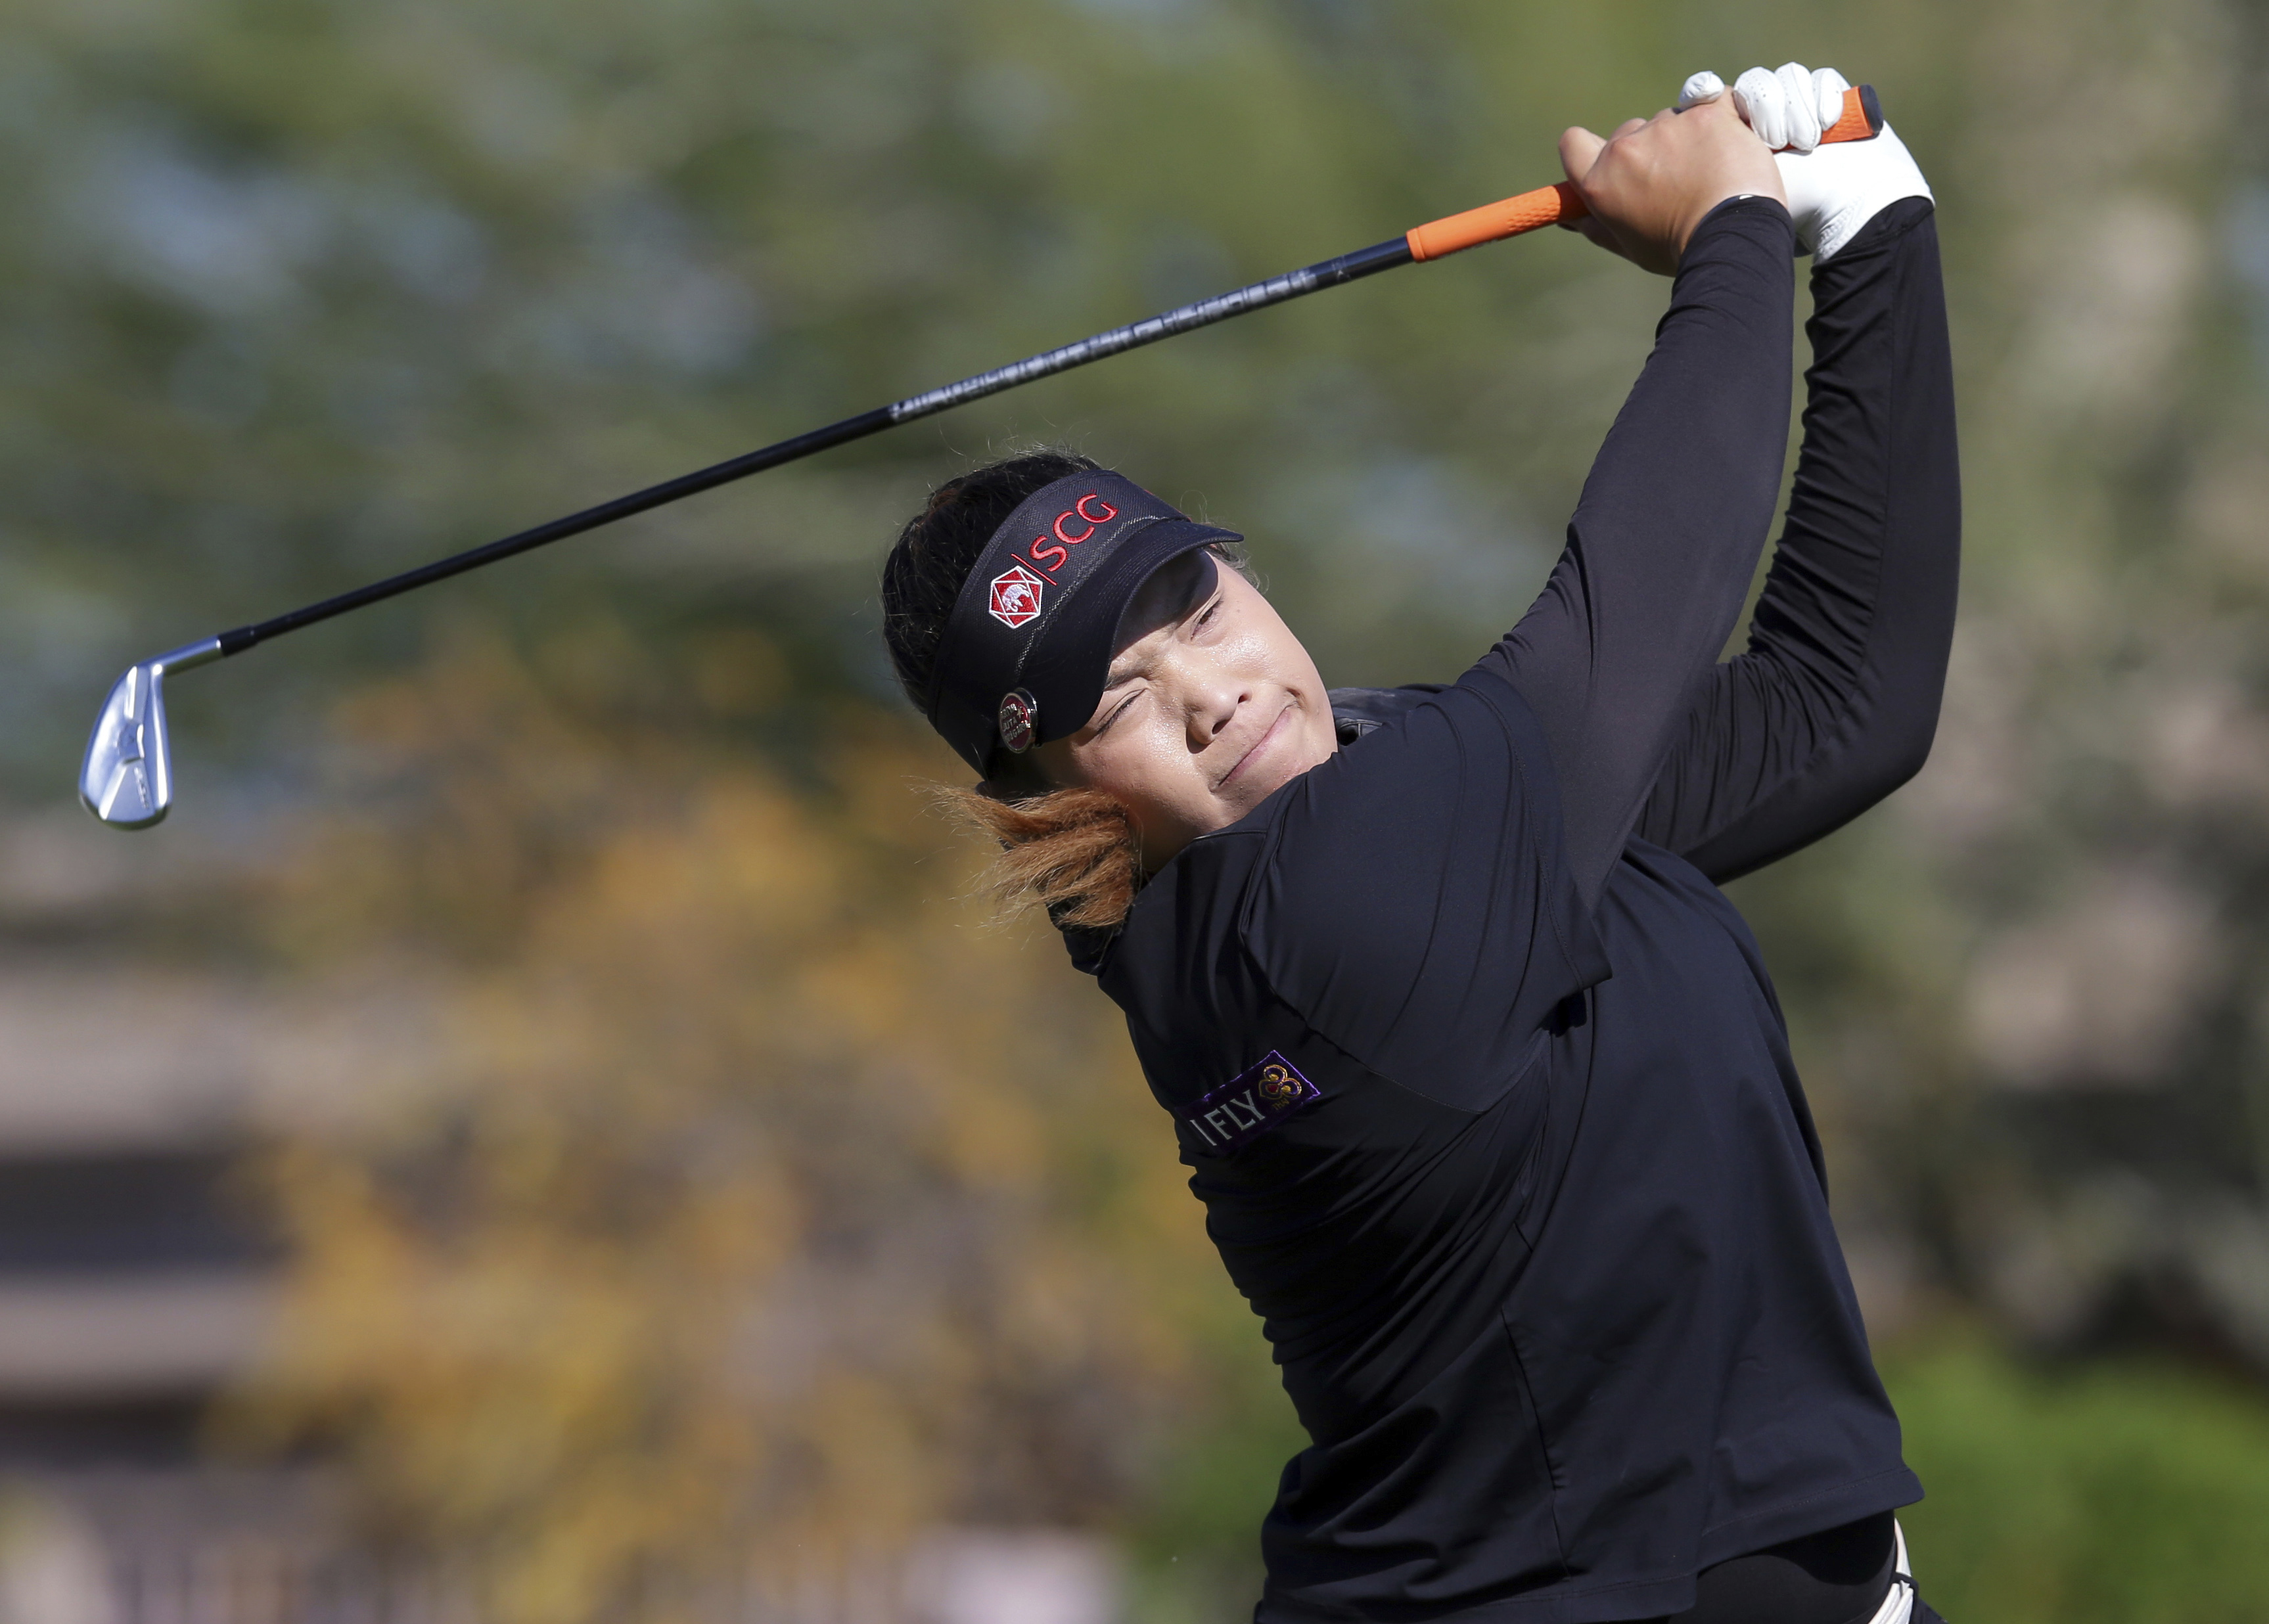 FILE - In this Sunday, March 19, 2017, file photo, Ariya Jutanugarn, of Thailand, tees off on the during the final round of a LPGA golf tournament in Phoenix. Jutanugarn and So Yeon Ryu each had a chance to take over the No. 1 ranking in women's golf over